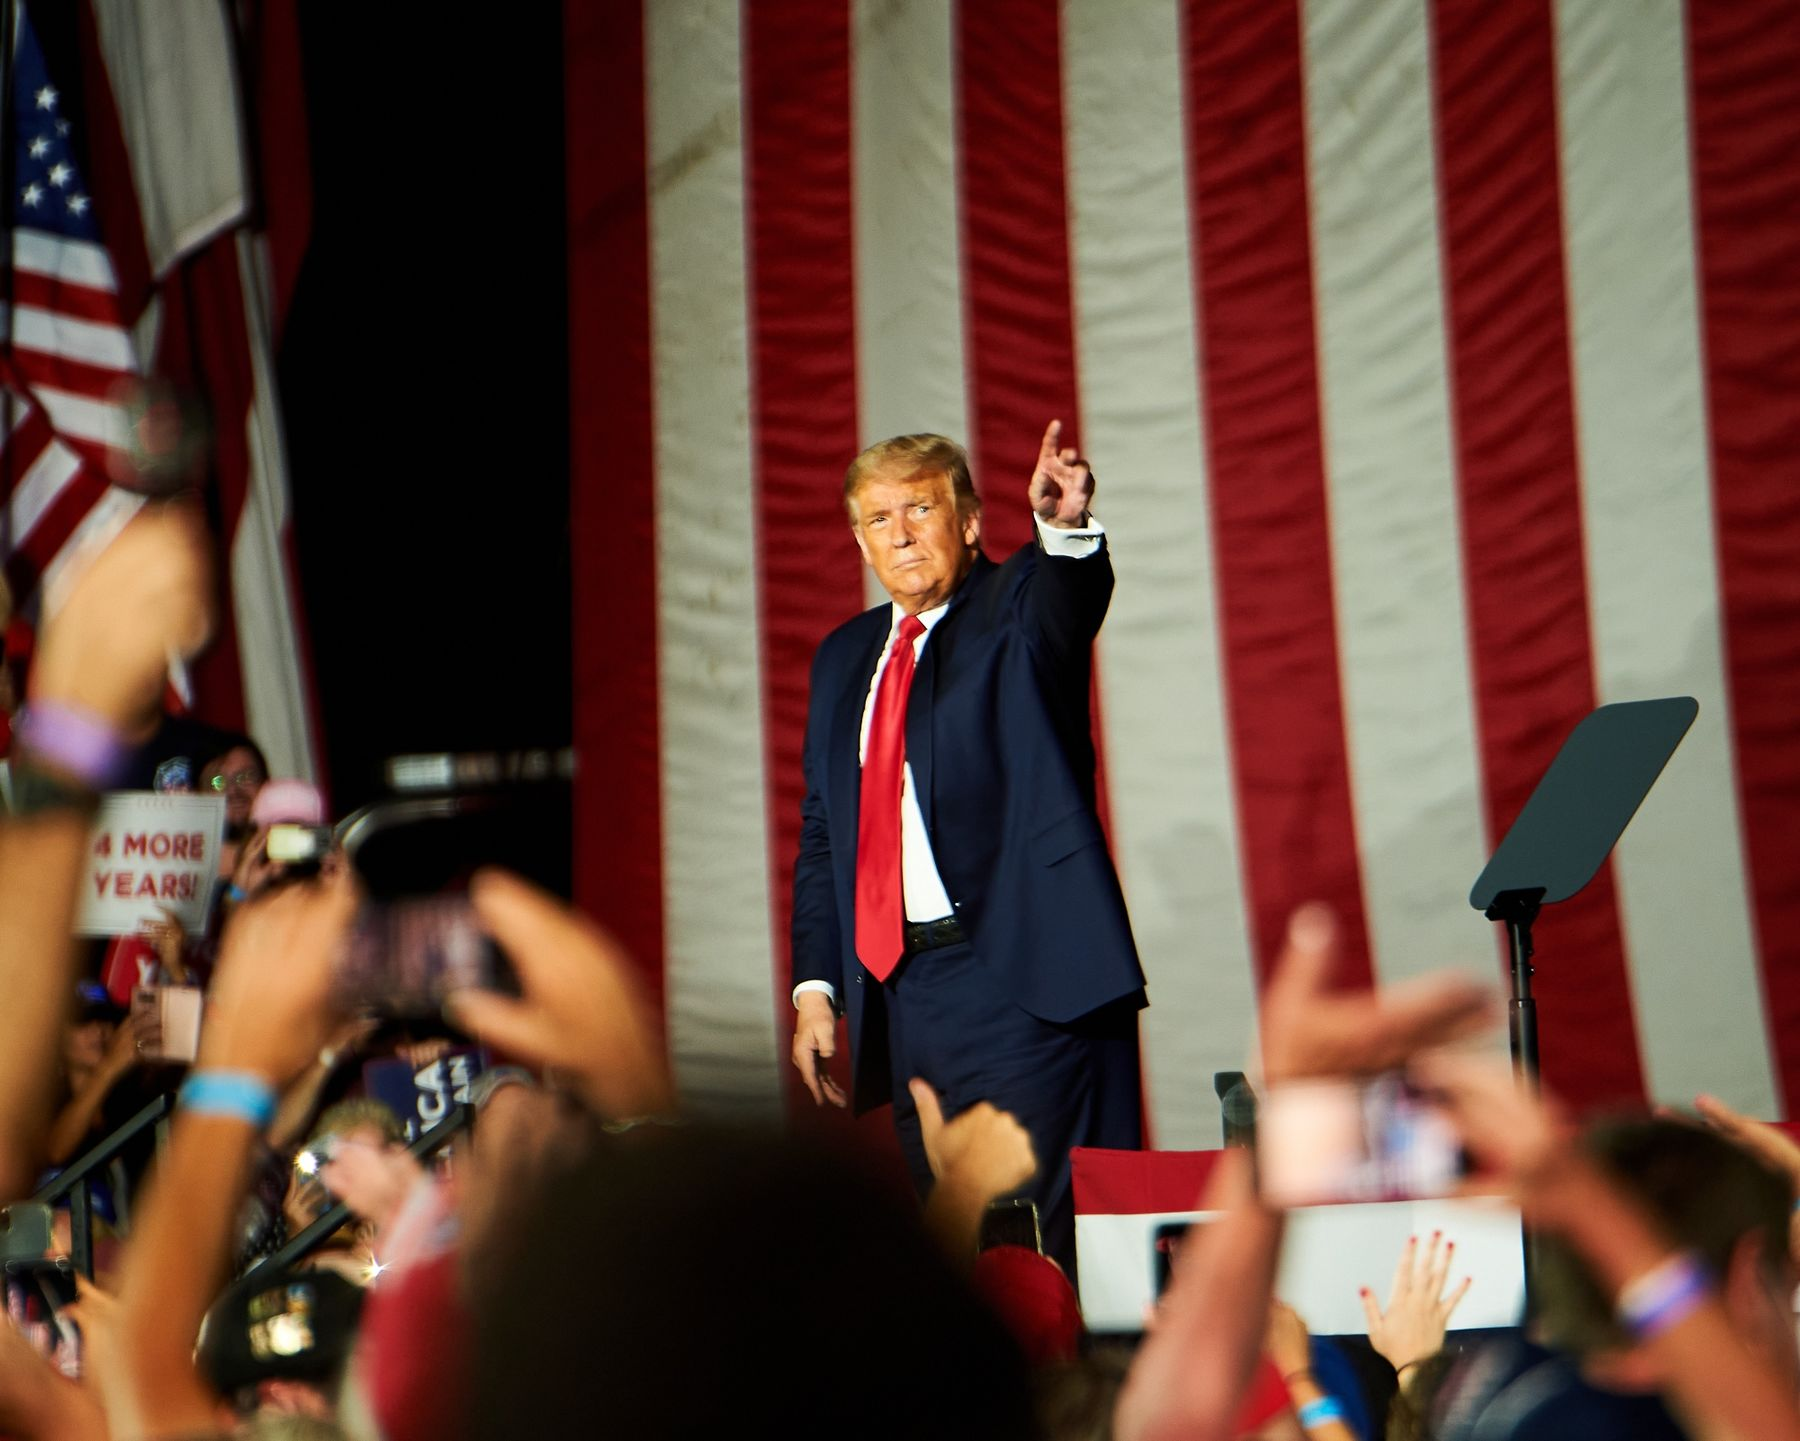 Trumpduring a rally in Sanford, Florida. on Oct. 12. Trump is now placing his final bet on just four battleground states: Michigan, Minnesota, Ohio and Pennsylvania.